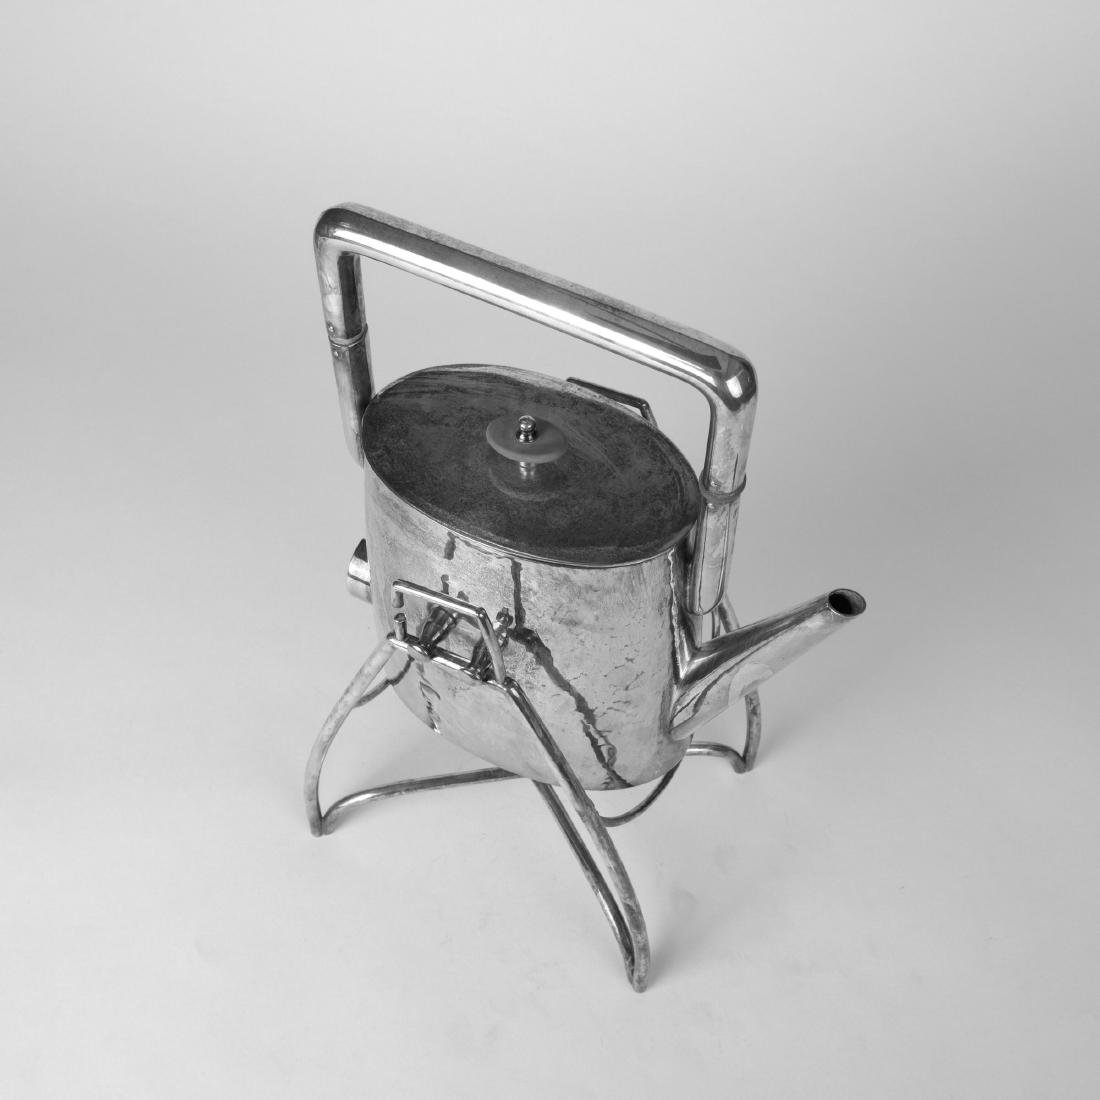 Electric water kettle with stand, c. 1930 - 3